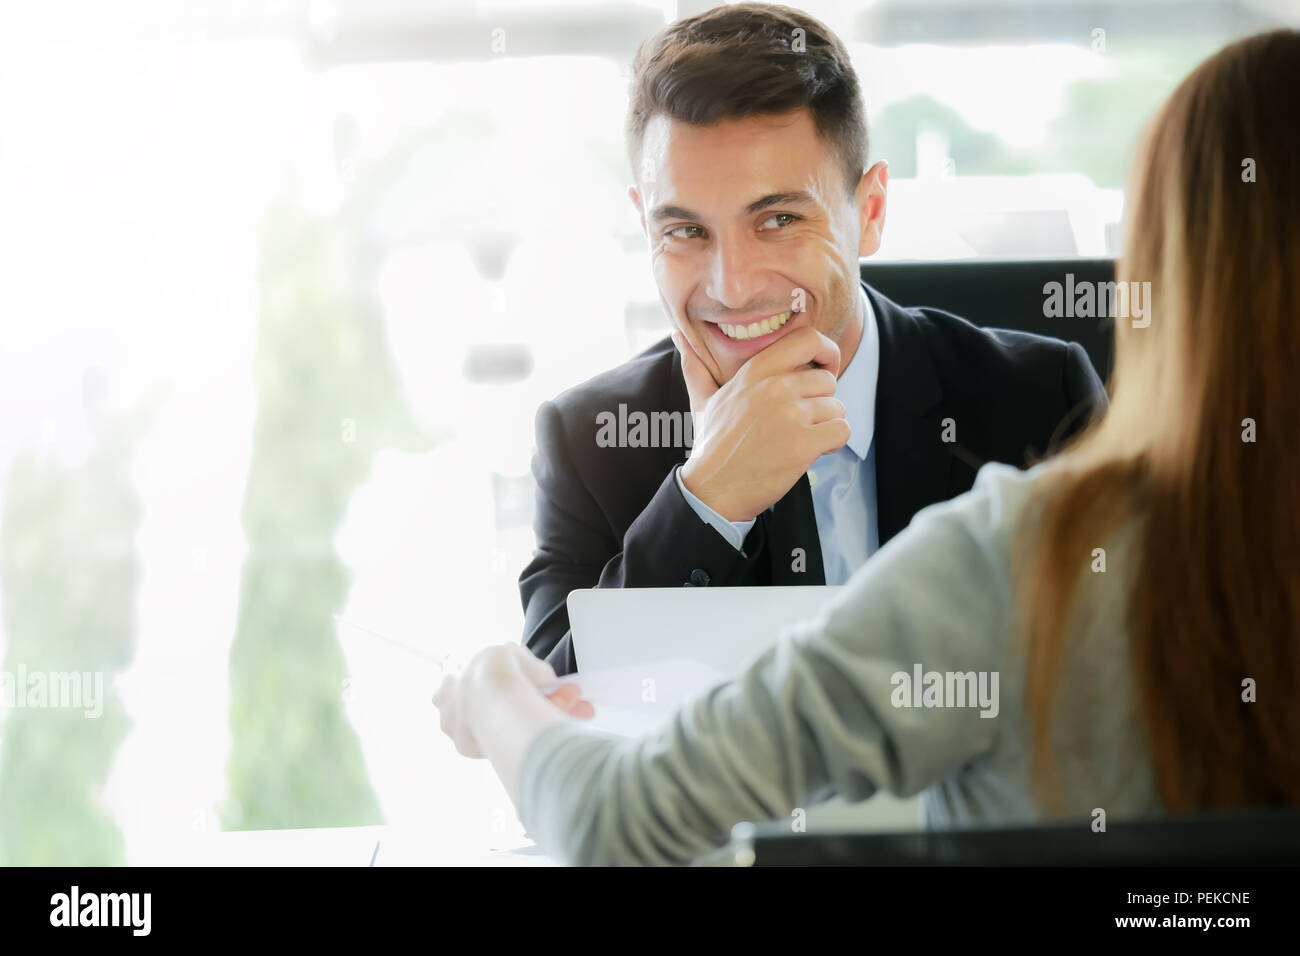 Applying for new job,career opportunity concept : Executive management or recruitment representative interviews applicant for a vacant position,woman submits an application form to an interviewer - Stock Image